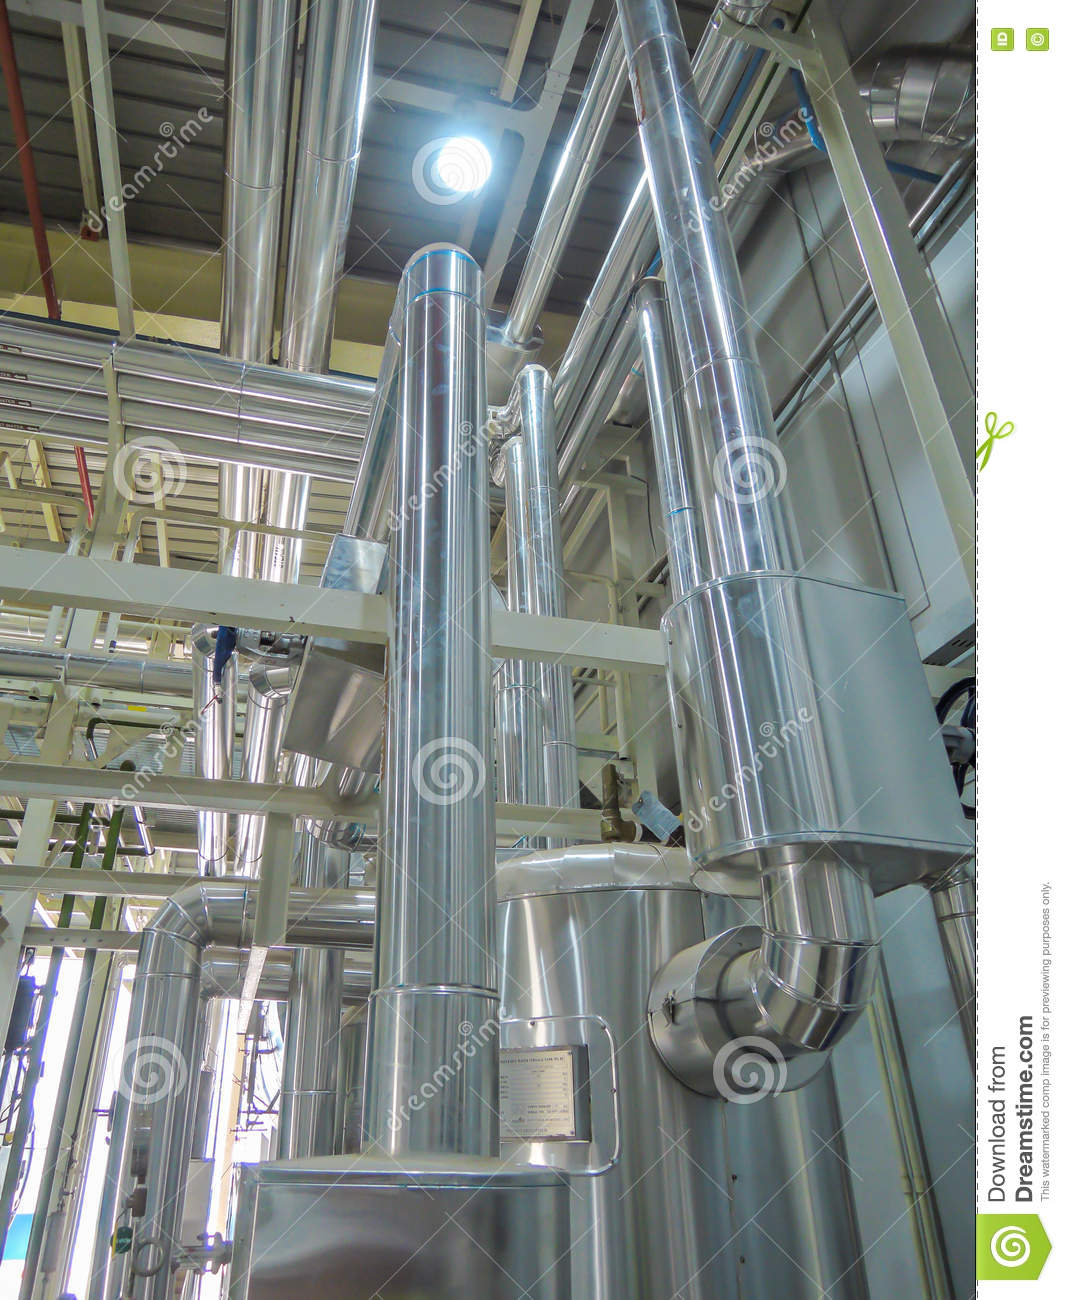 Process Boiler Steel Piping Hot Water Steam In Room. Stock Image ...